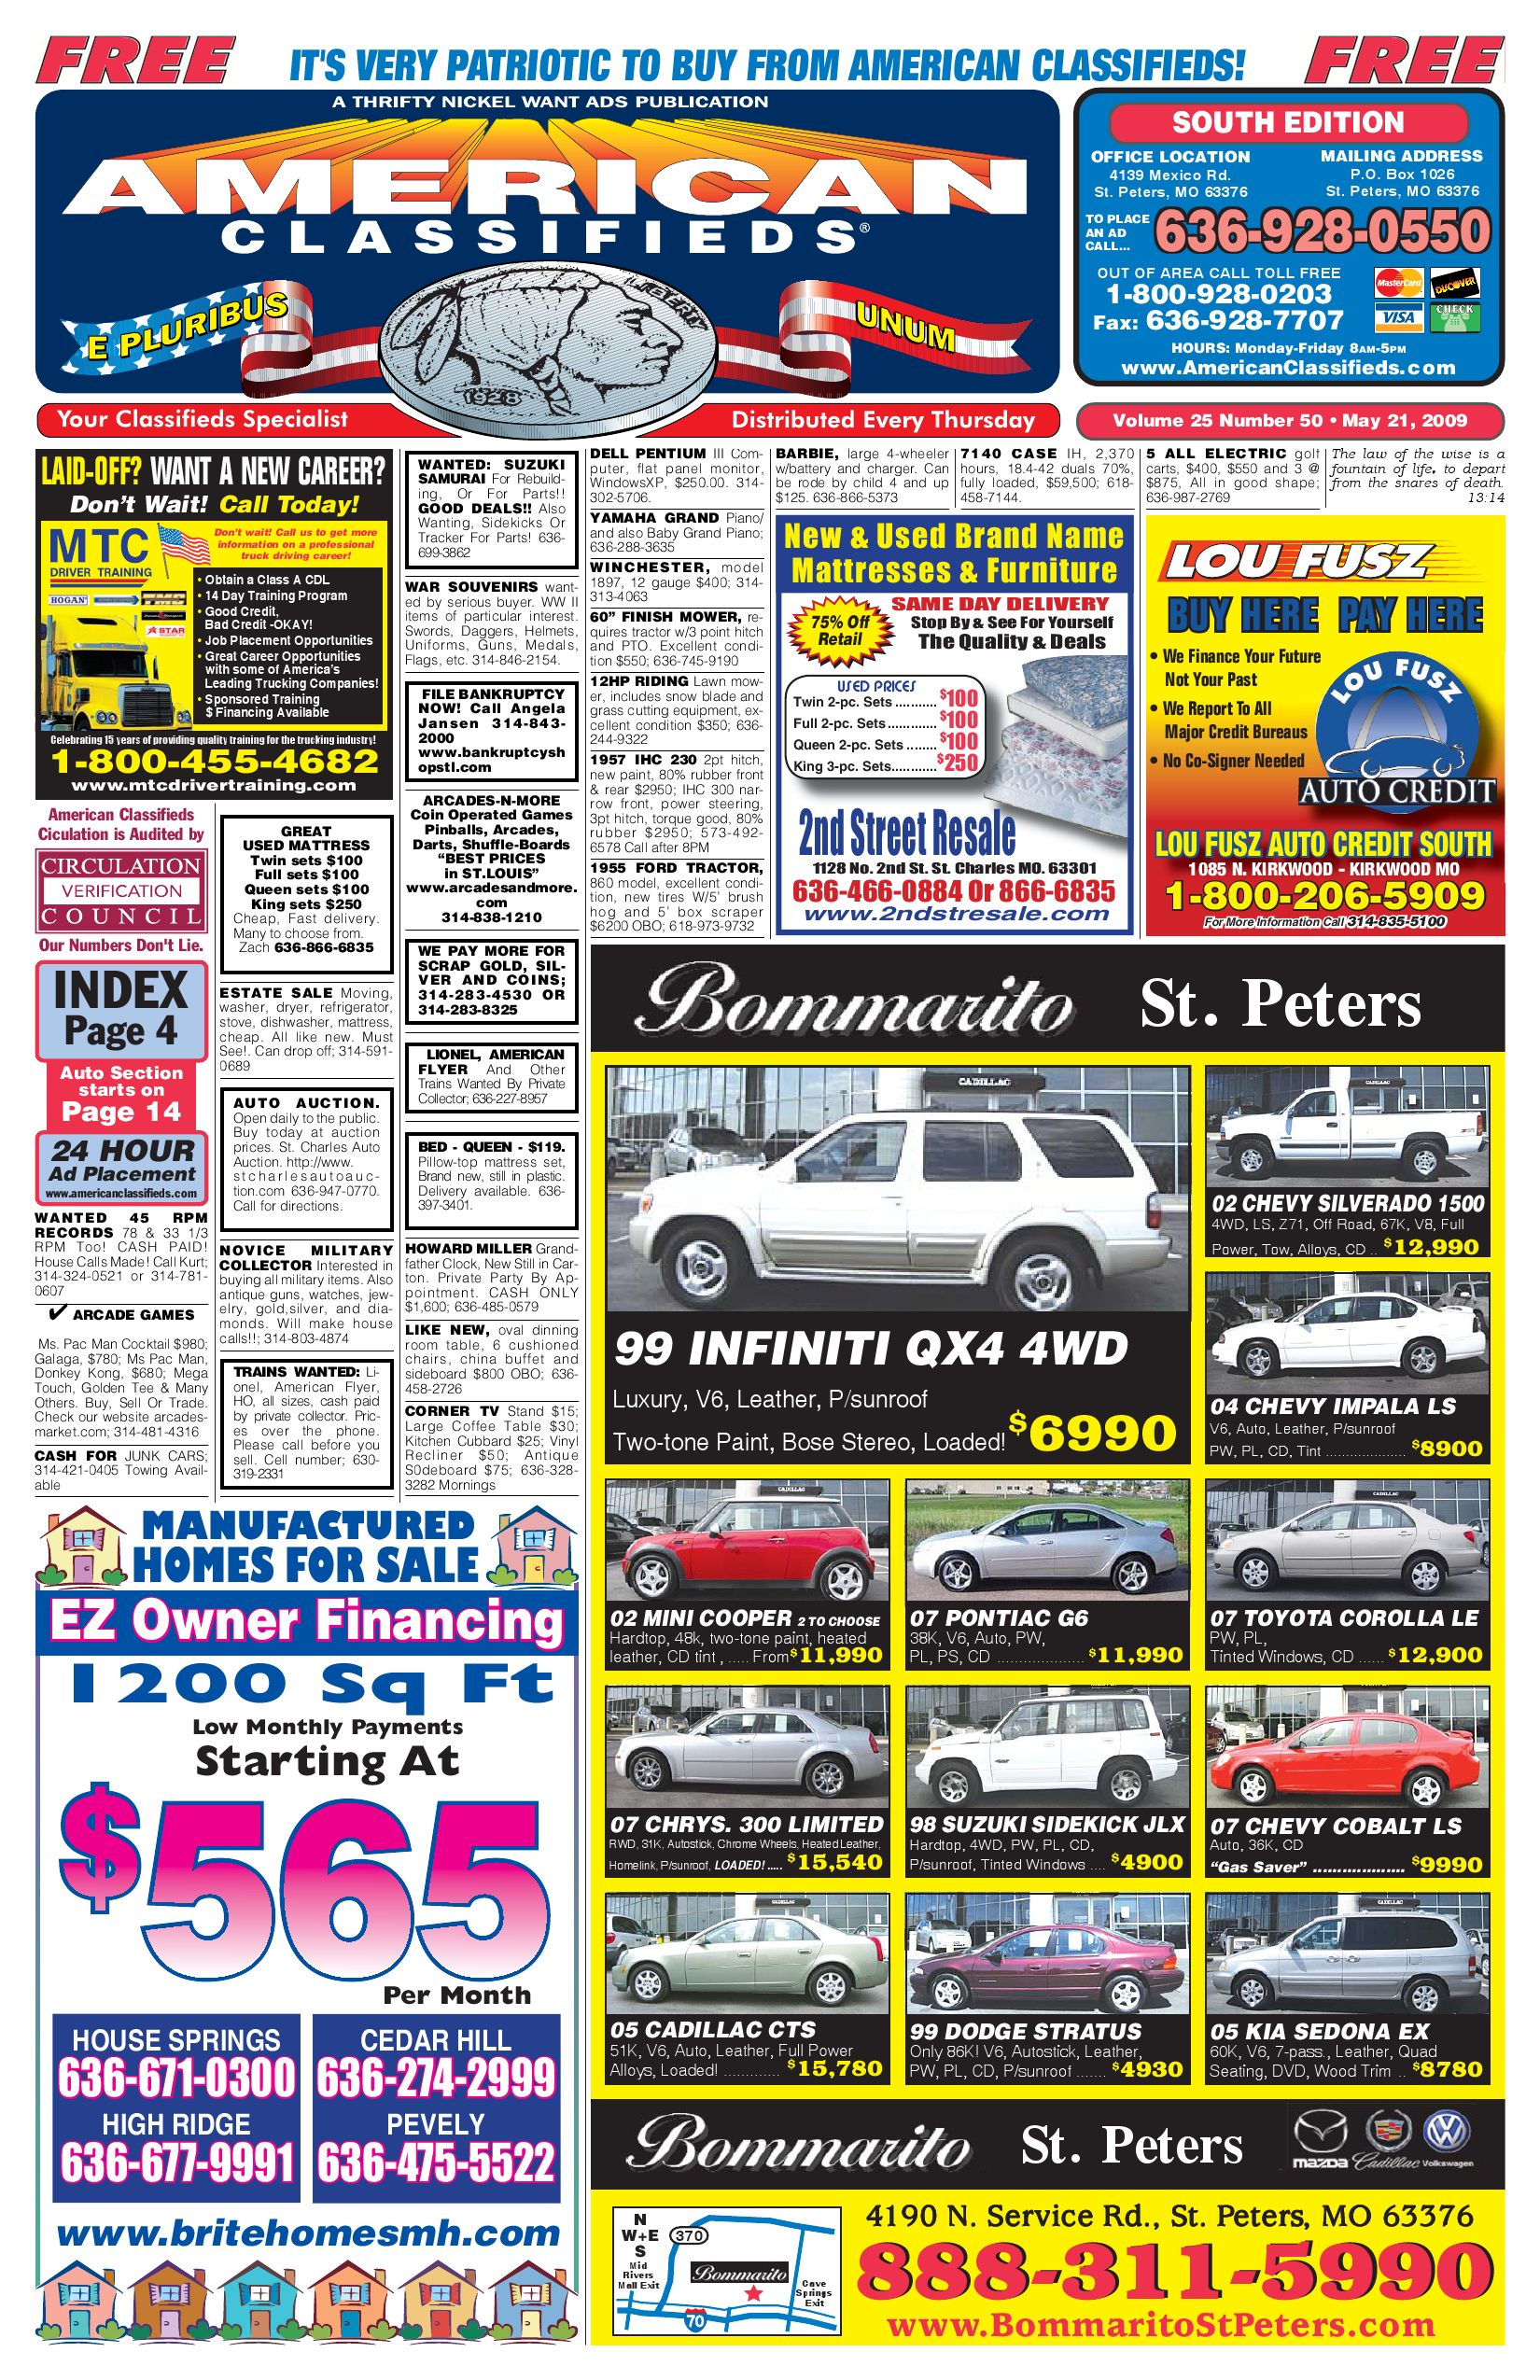 23094586c28d4 American Classifieds - St. Louis - 05-21-09 by Thrifty Nickel Want ...